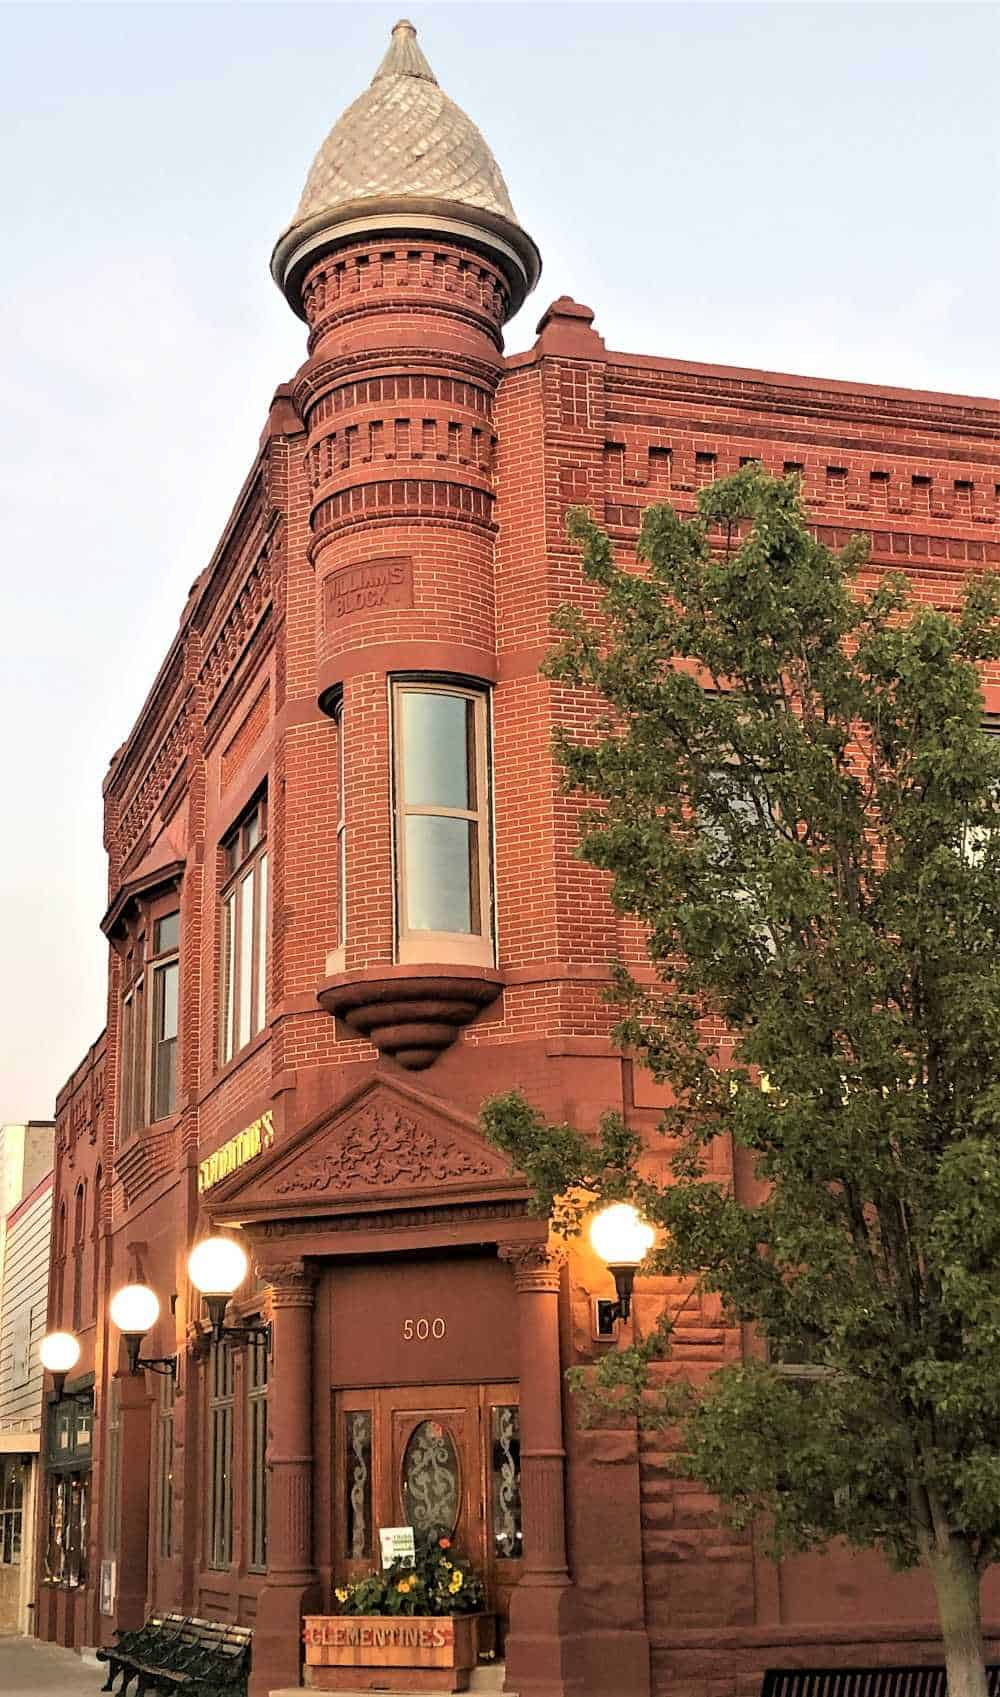 Clementine's stands grandly at the corner of Phoenix and Center Streets. A majestic golden copula crowns the red-brick building, making it impossible to miss.